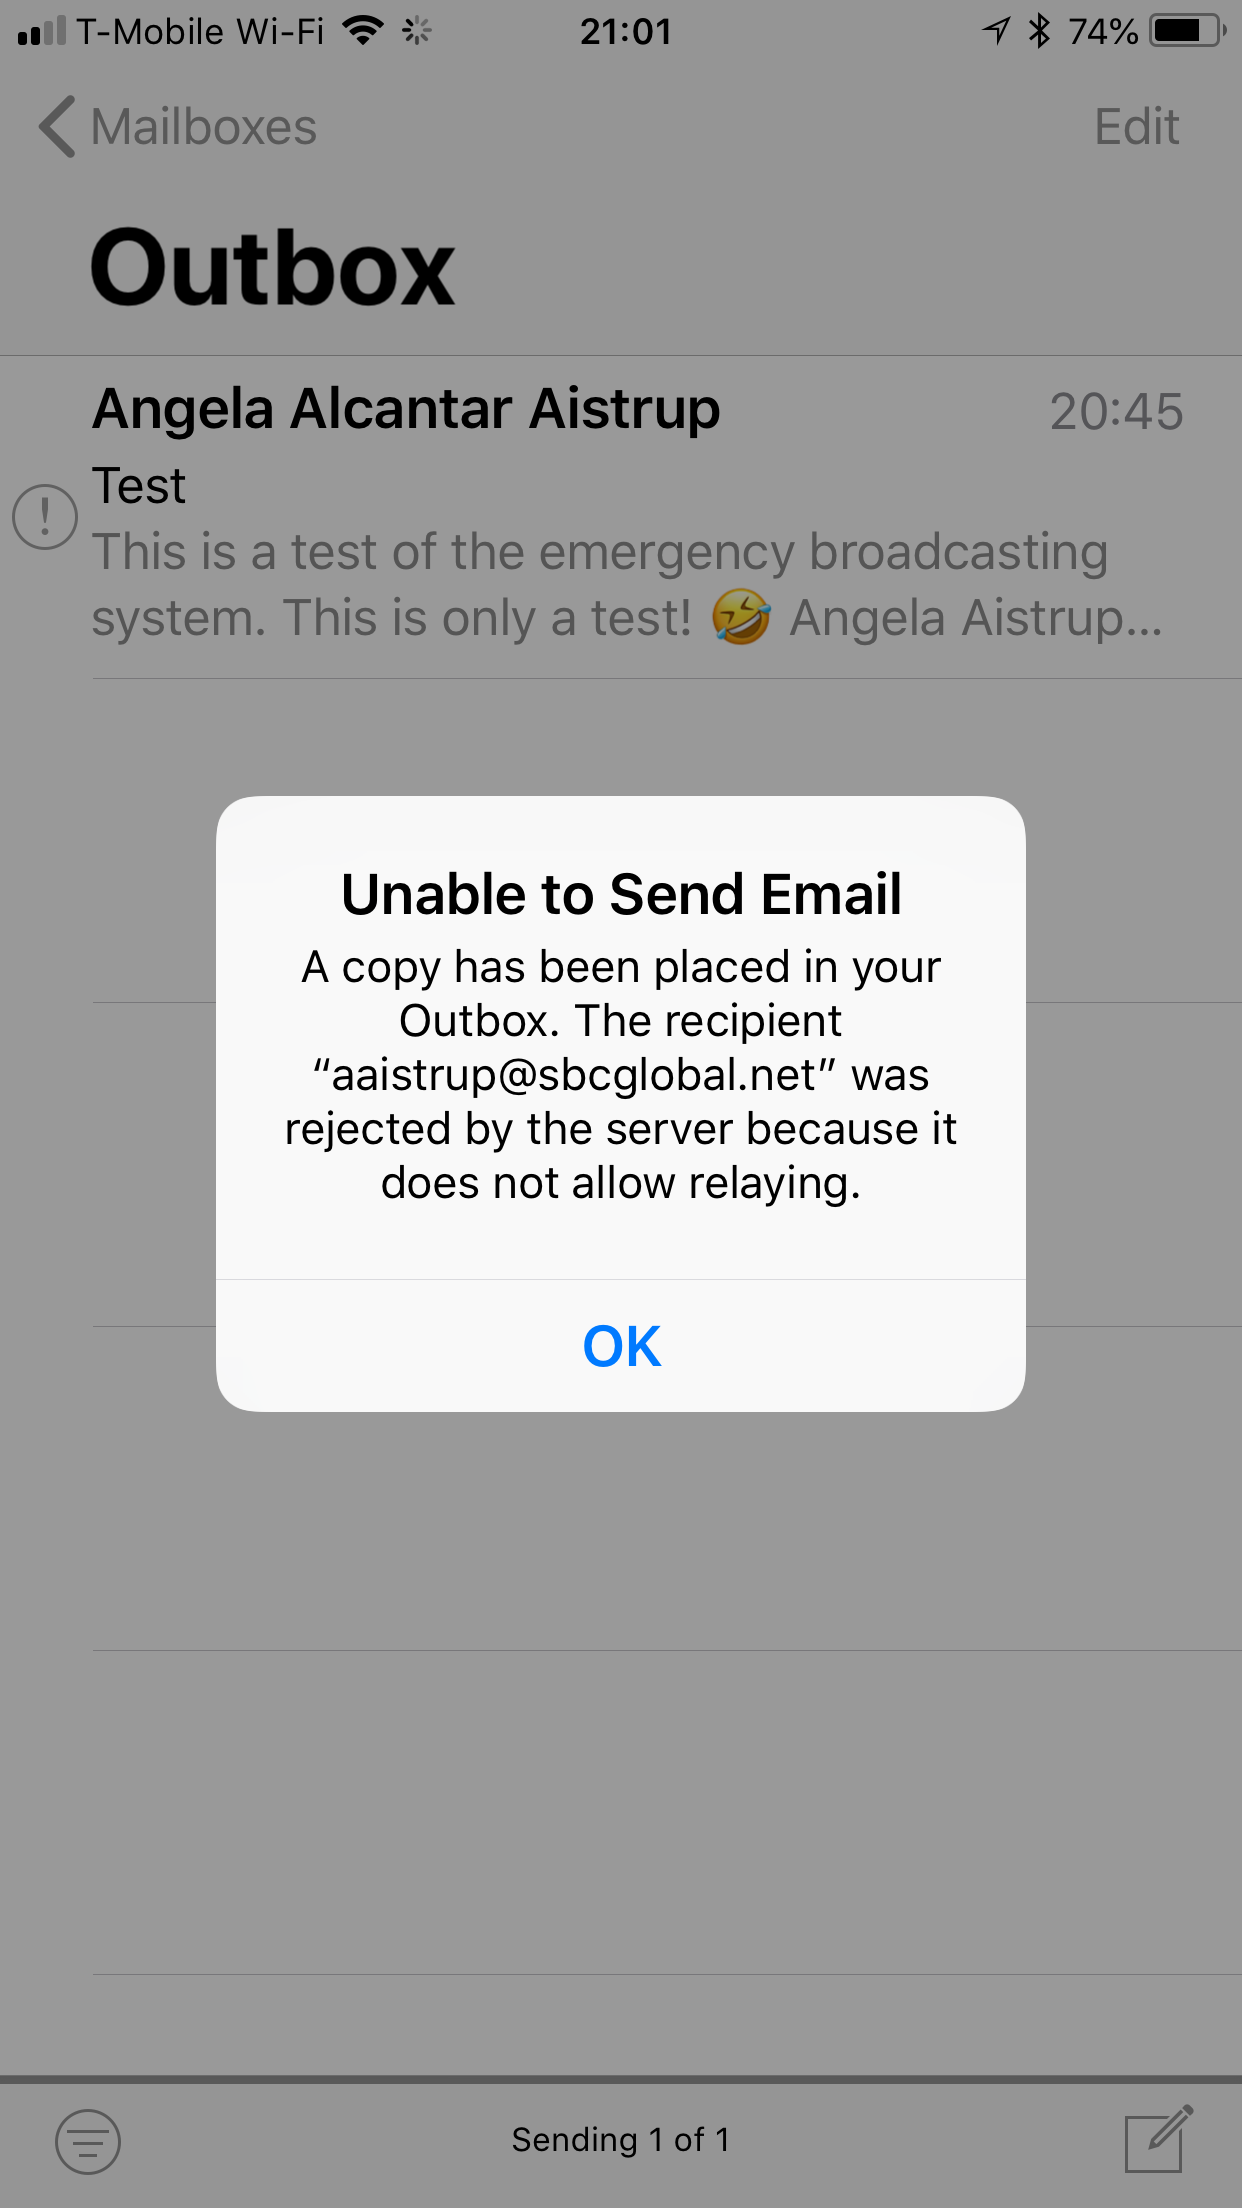 email does not allow relaying